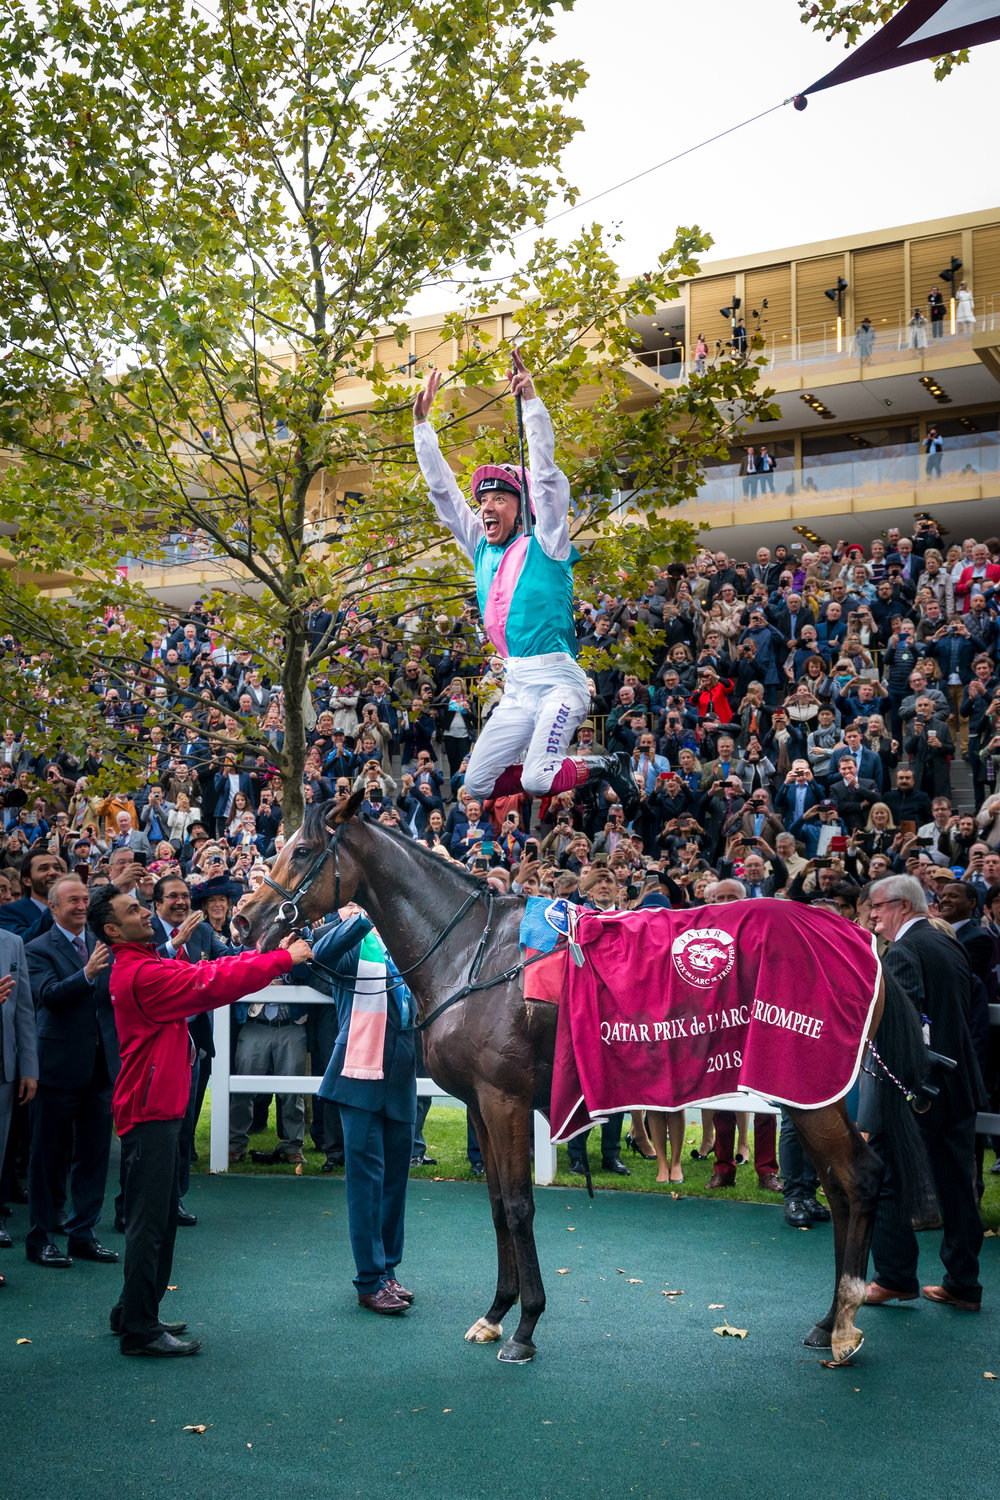 QPAT2018_Florian Leger - SHARE & DARE-159.jpg